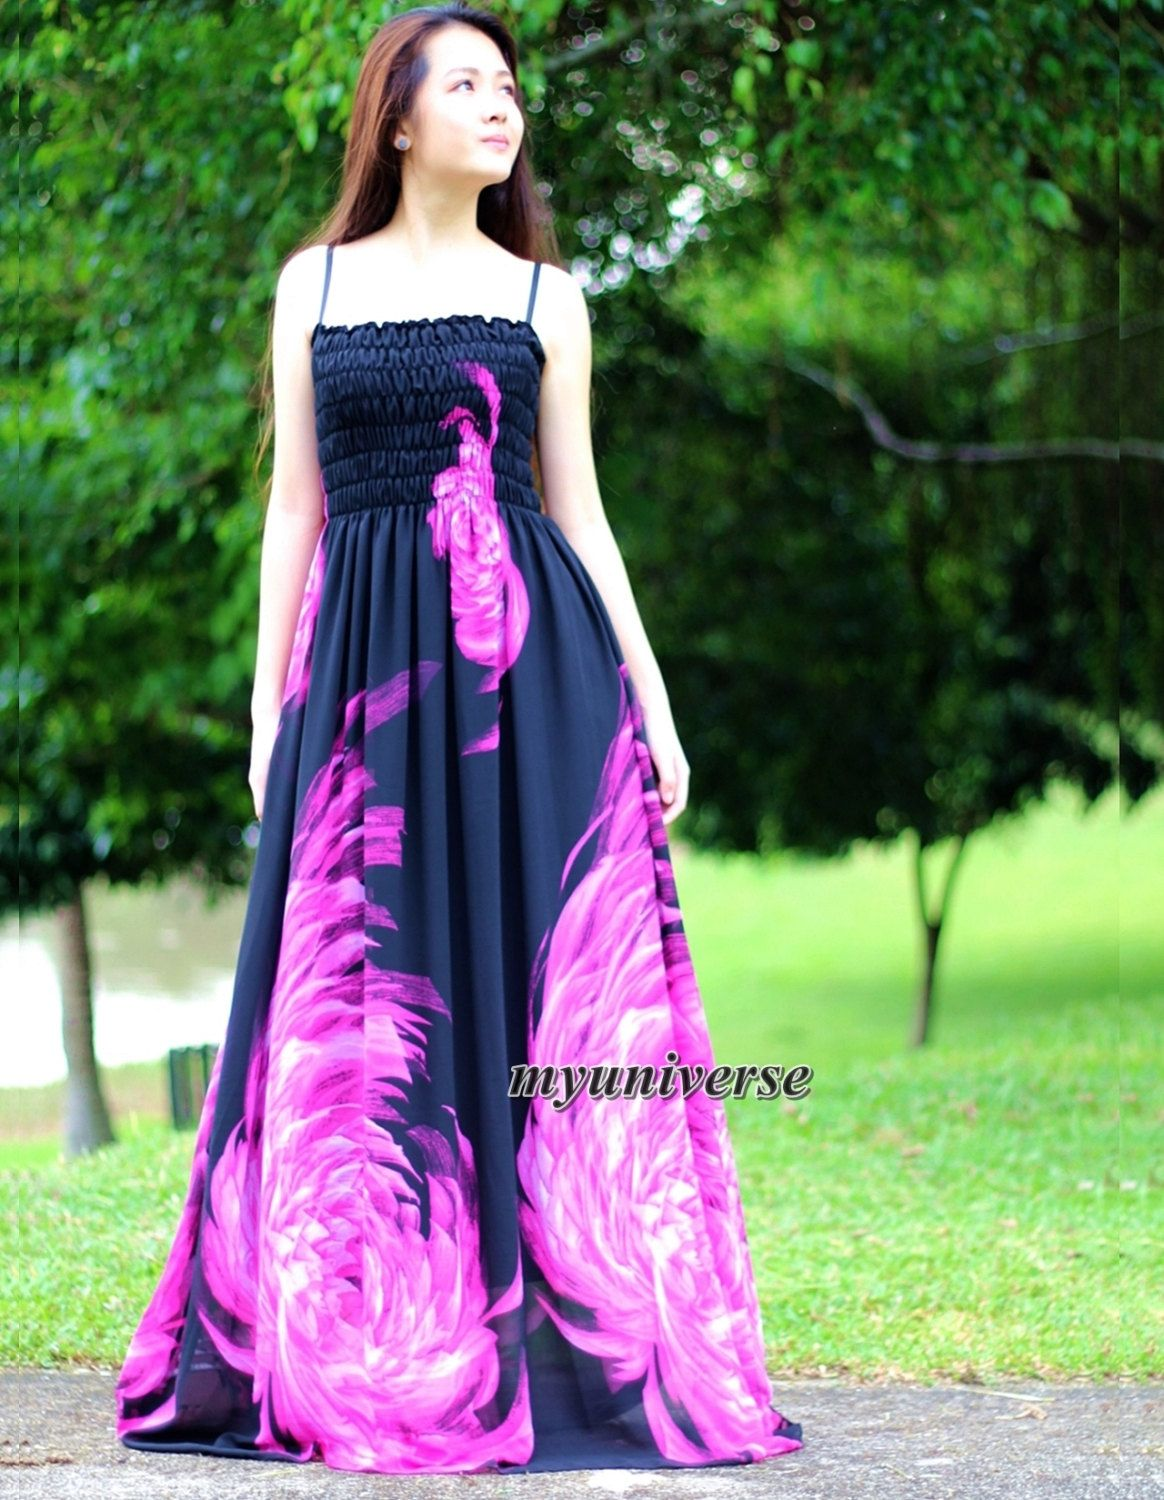 Black maxi dress gown sundress dress prom summer plus size floral